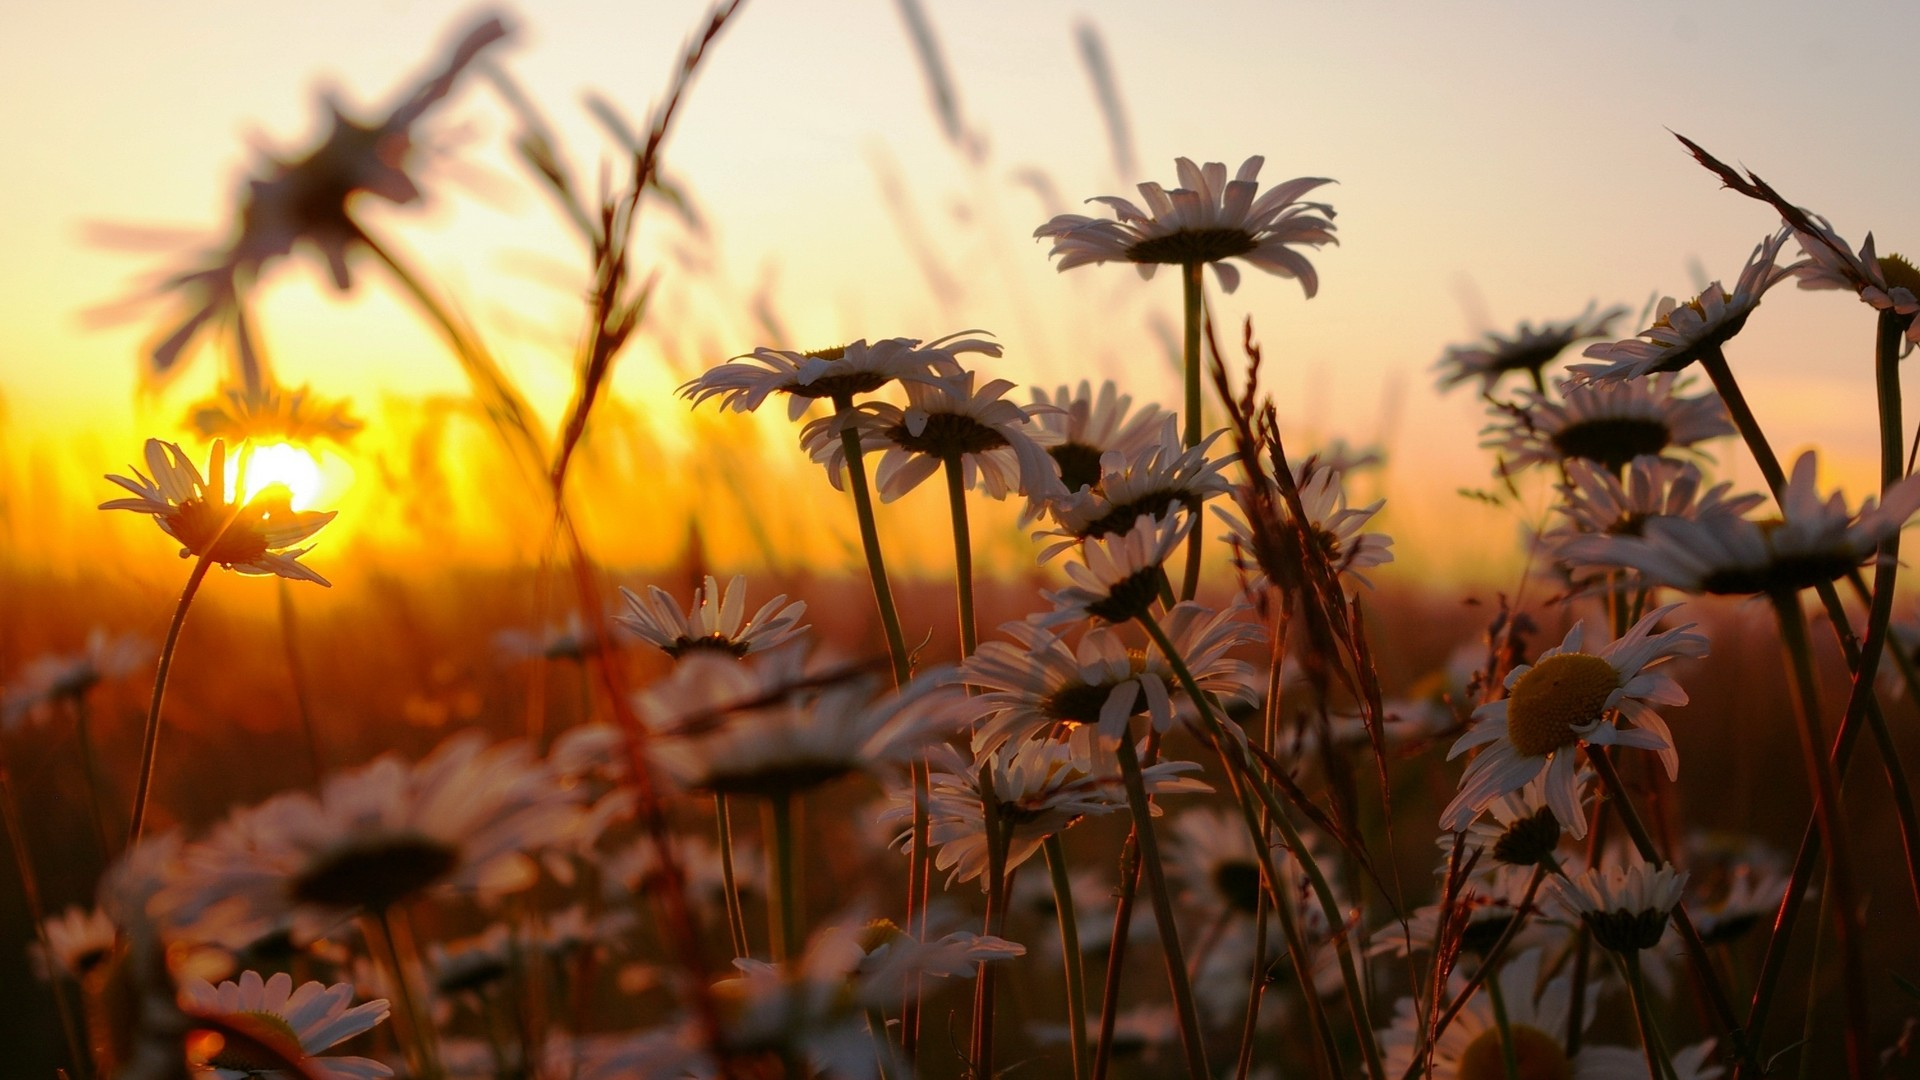 Daisies in a field at sunset